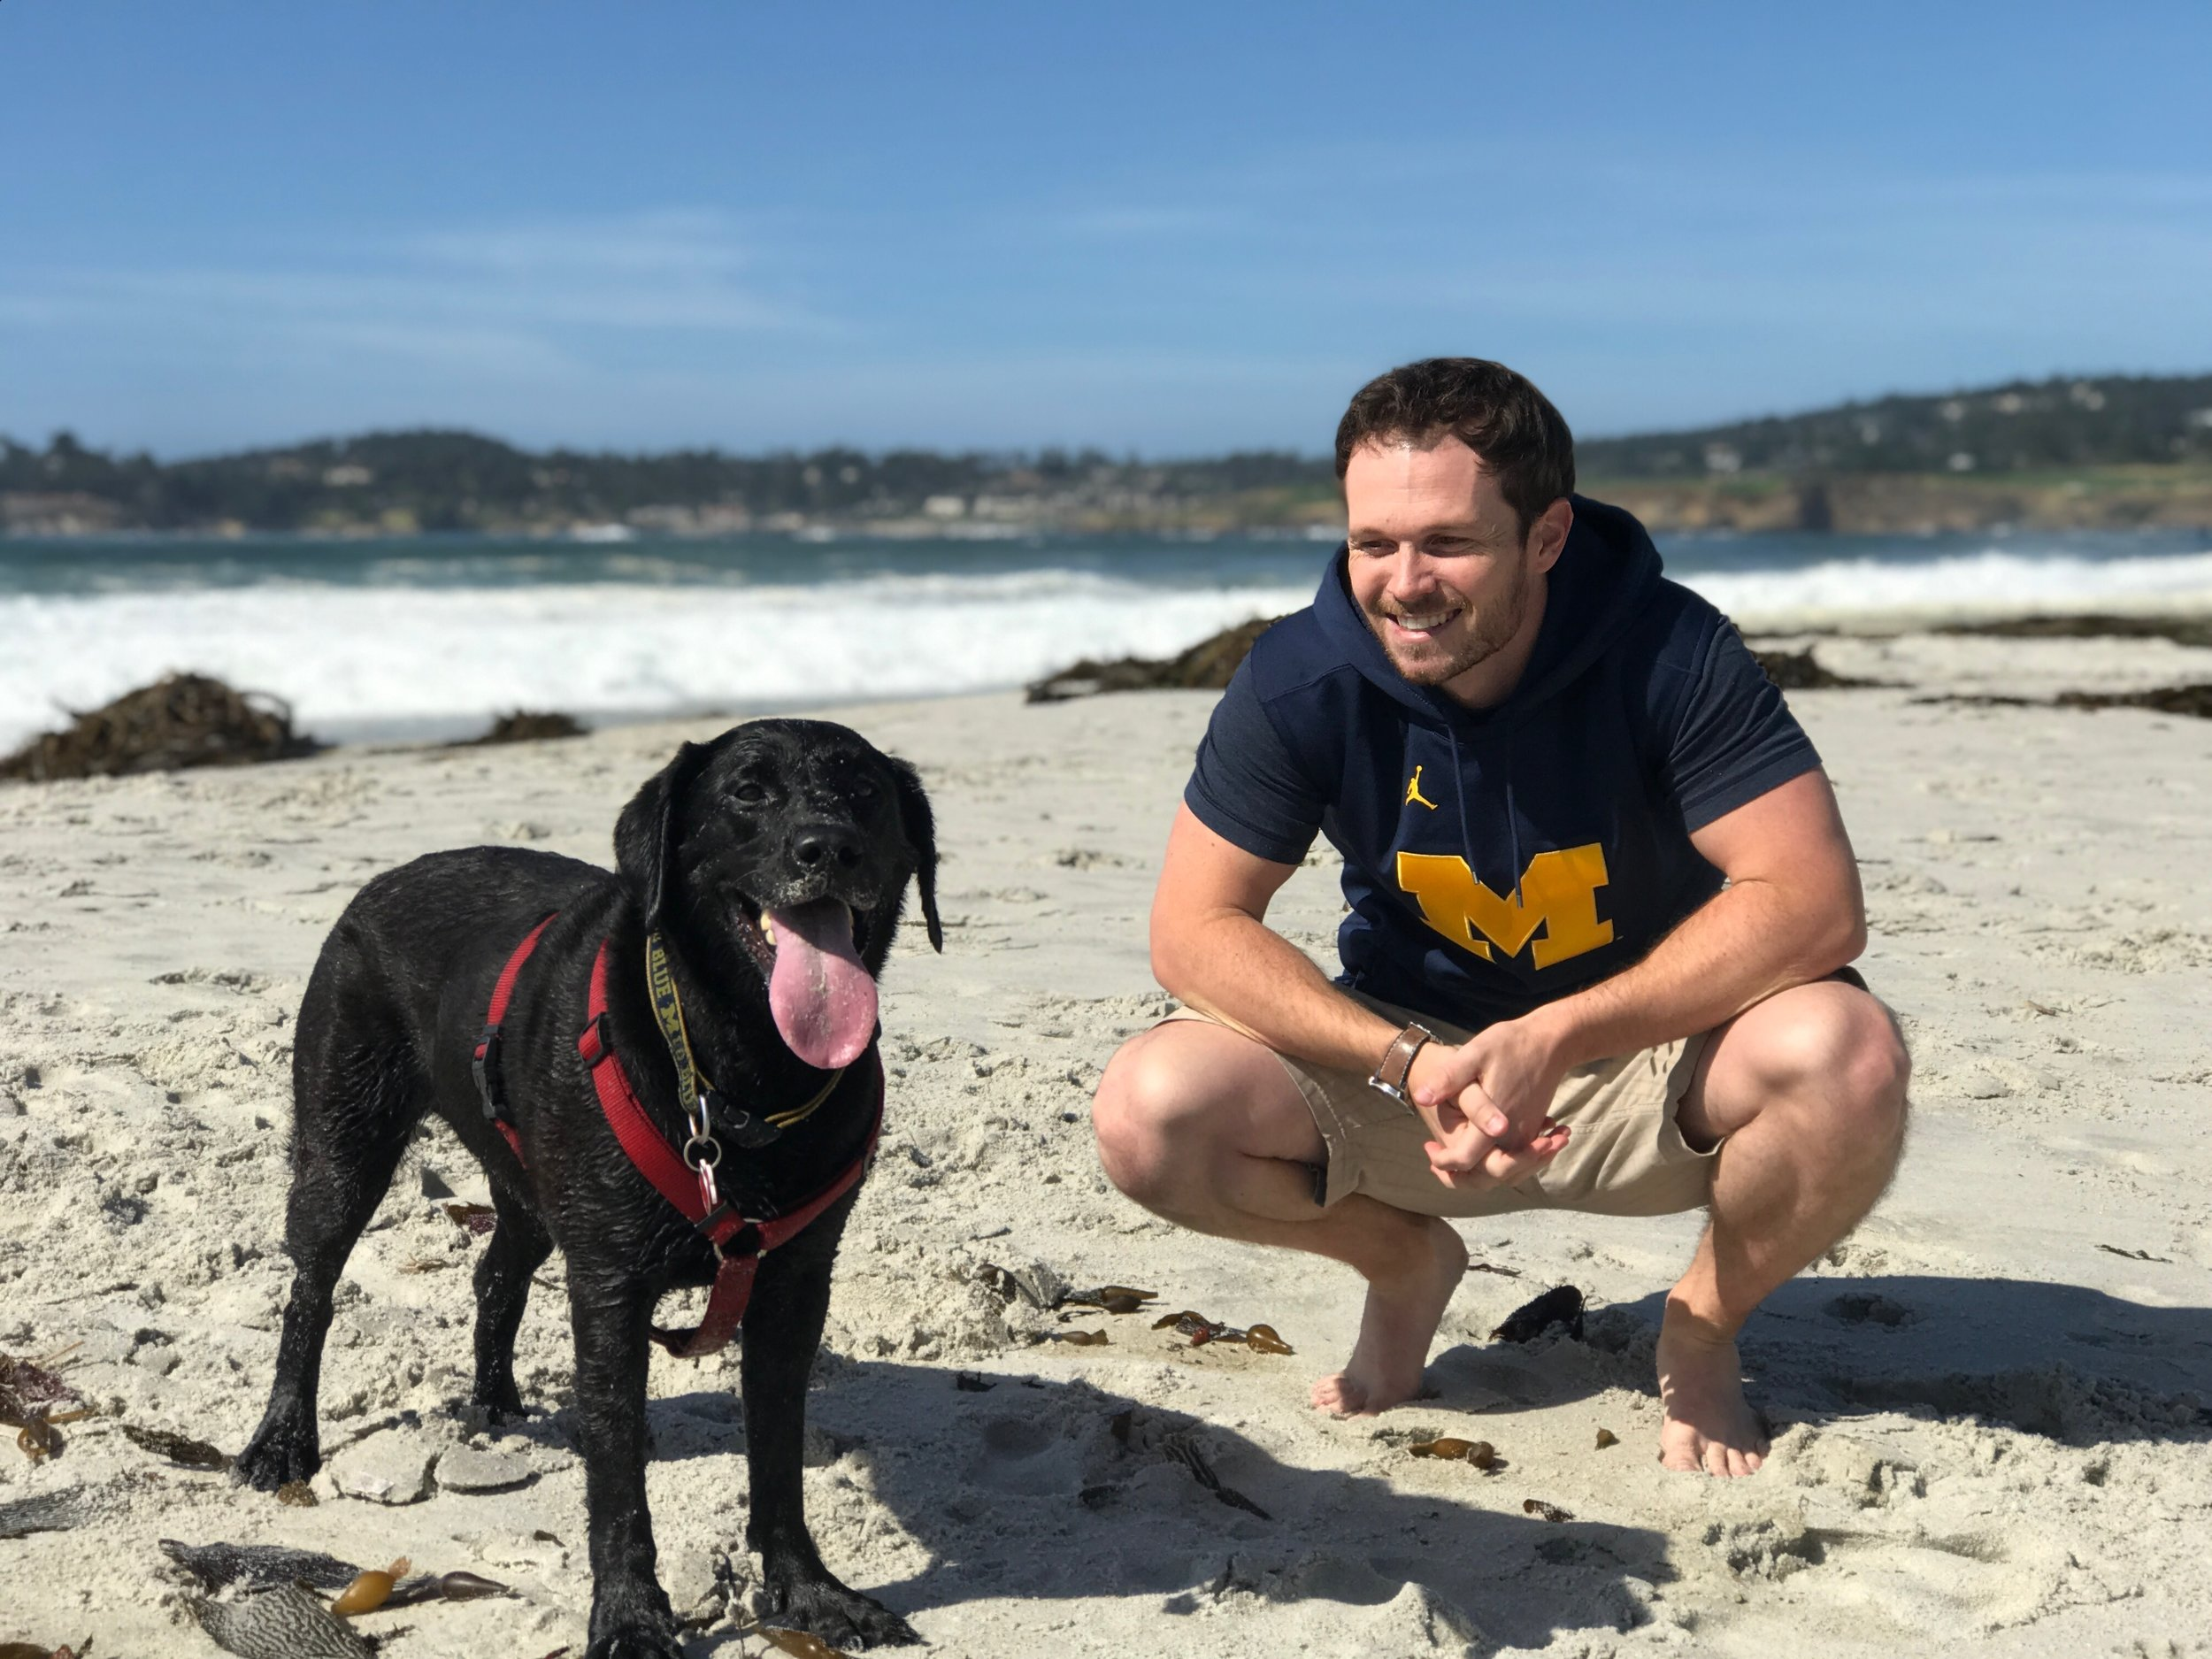 Ben Herrmann - HEAD OF OPERATIONS & STRATEGYBen is a Bay area native that currently works in Supply Chain at Tesla. He adopted his furbaby Midnight in 2012 (funny enough this is when he met Monica, the founder of MO4PAWS!) Midnight is a black lab that loves fetch more than she loves food (seriously). In their free time you can find Midnight and Ben hiking the local trails in the bay area, jumping into the pool to cool off, or snuggling on the couch with some good Netflix.At MO4PAWS, Ben serves on the board focusing on partner outreach and business development. Ben has always had a compassion for dogs and animals. When Monica approached him about helping this cause, he asked how and what he could do to help. Monica's passion for helping animals was contagious and furthered his desire to join!